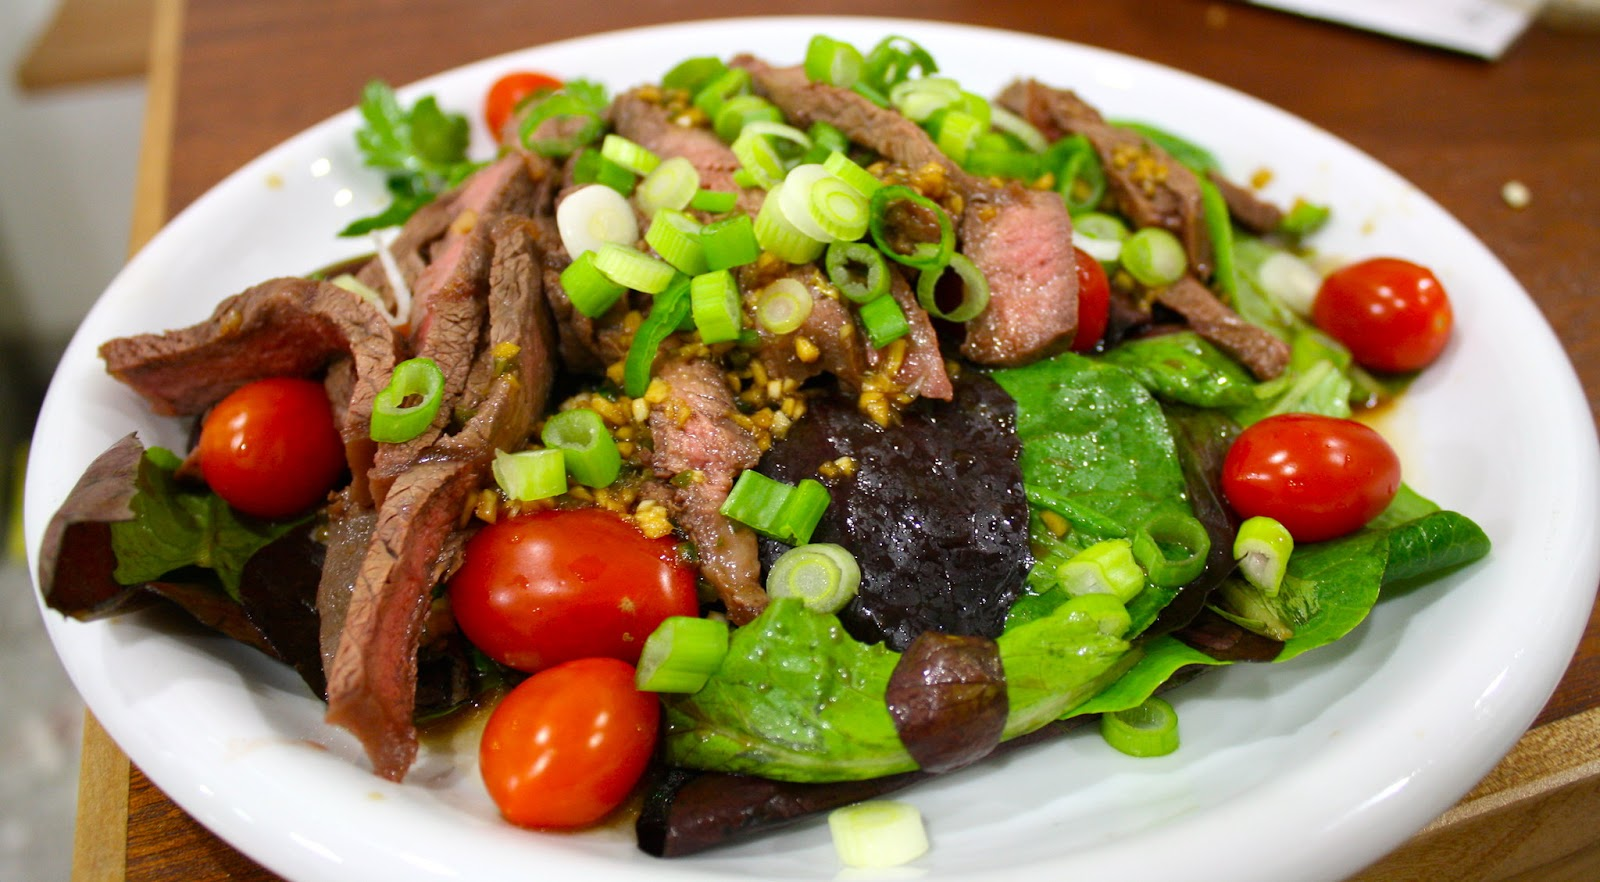 Steak Salad represents proper nutrition through meat, fruit and vegetables for optimal health to increase fertility.